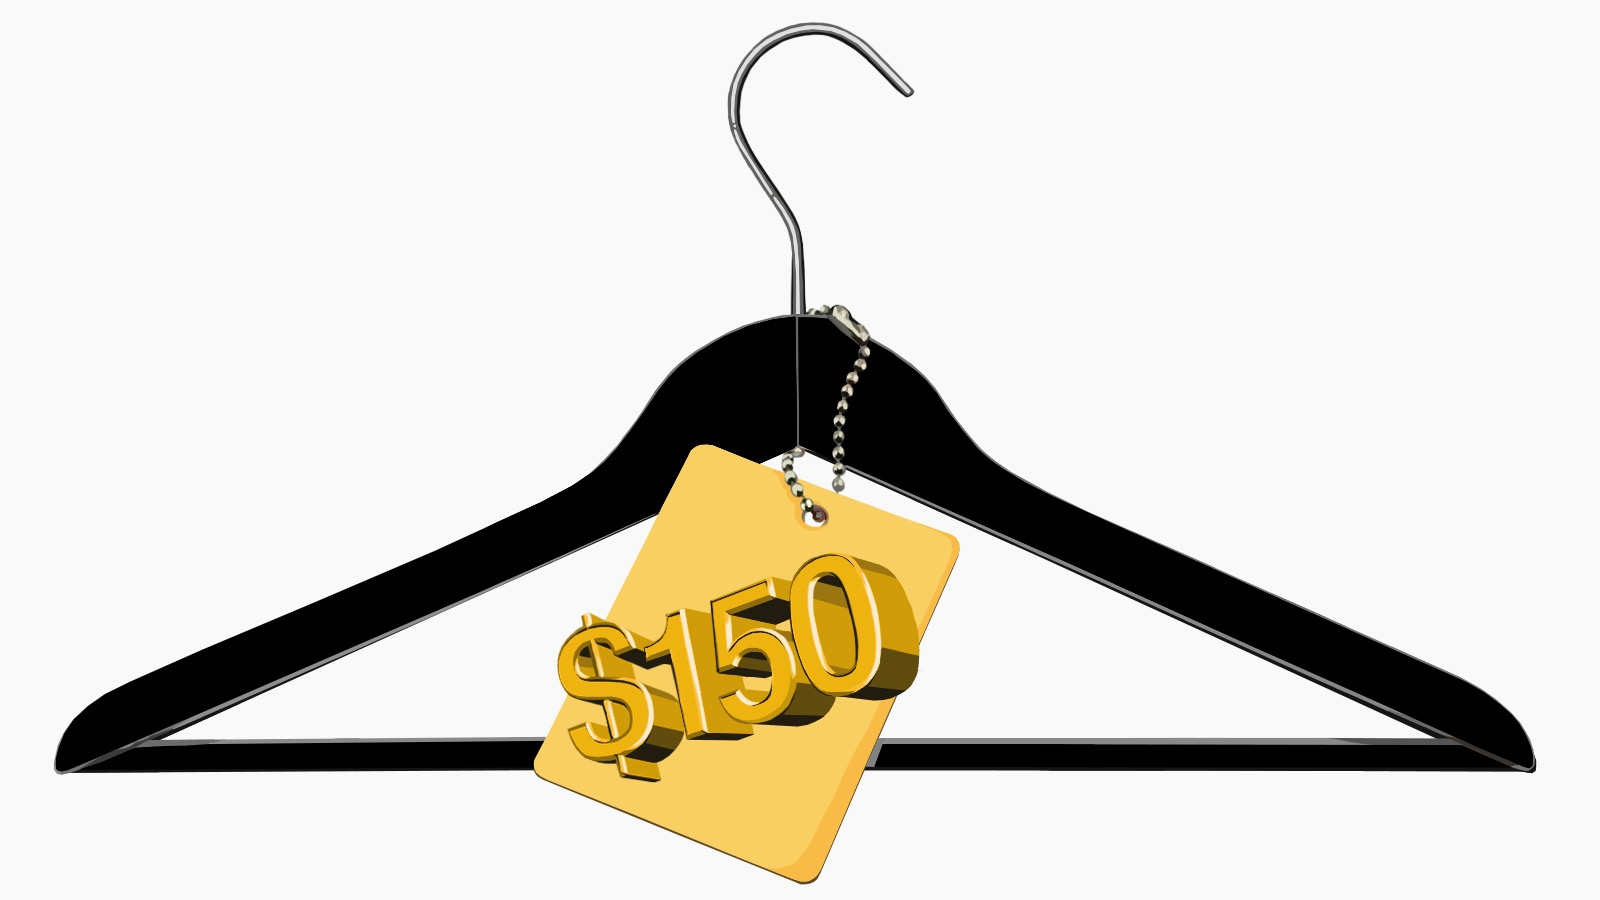 Your next item of clothing should be so expensive it hurts